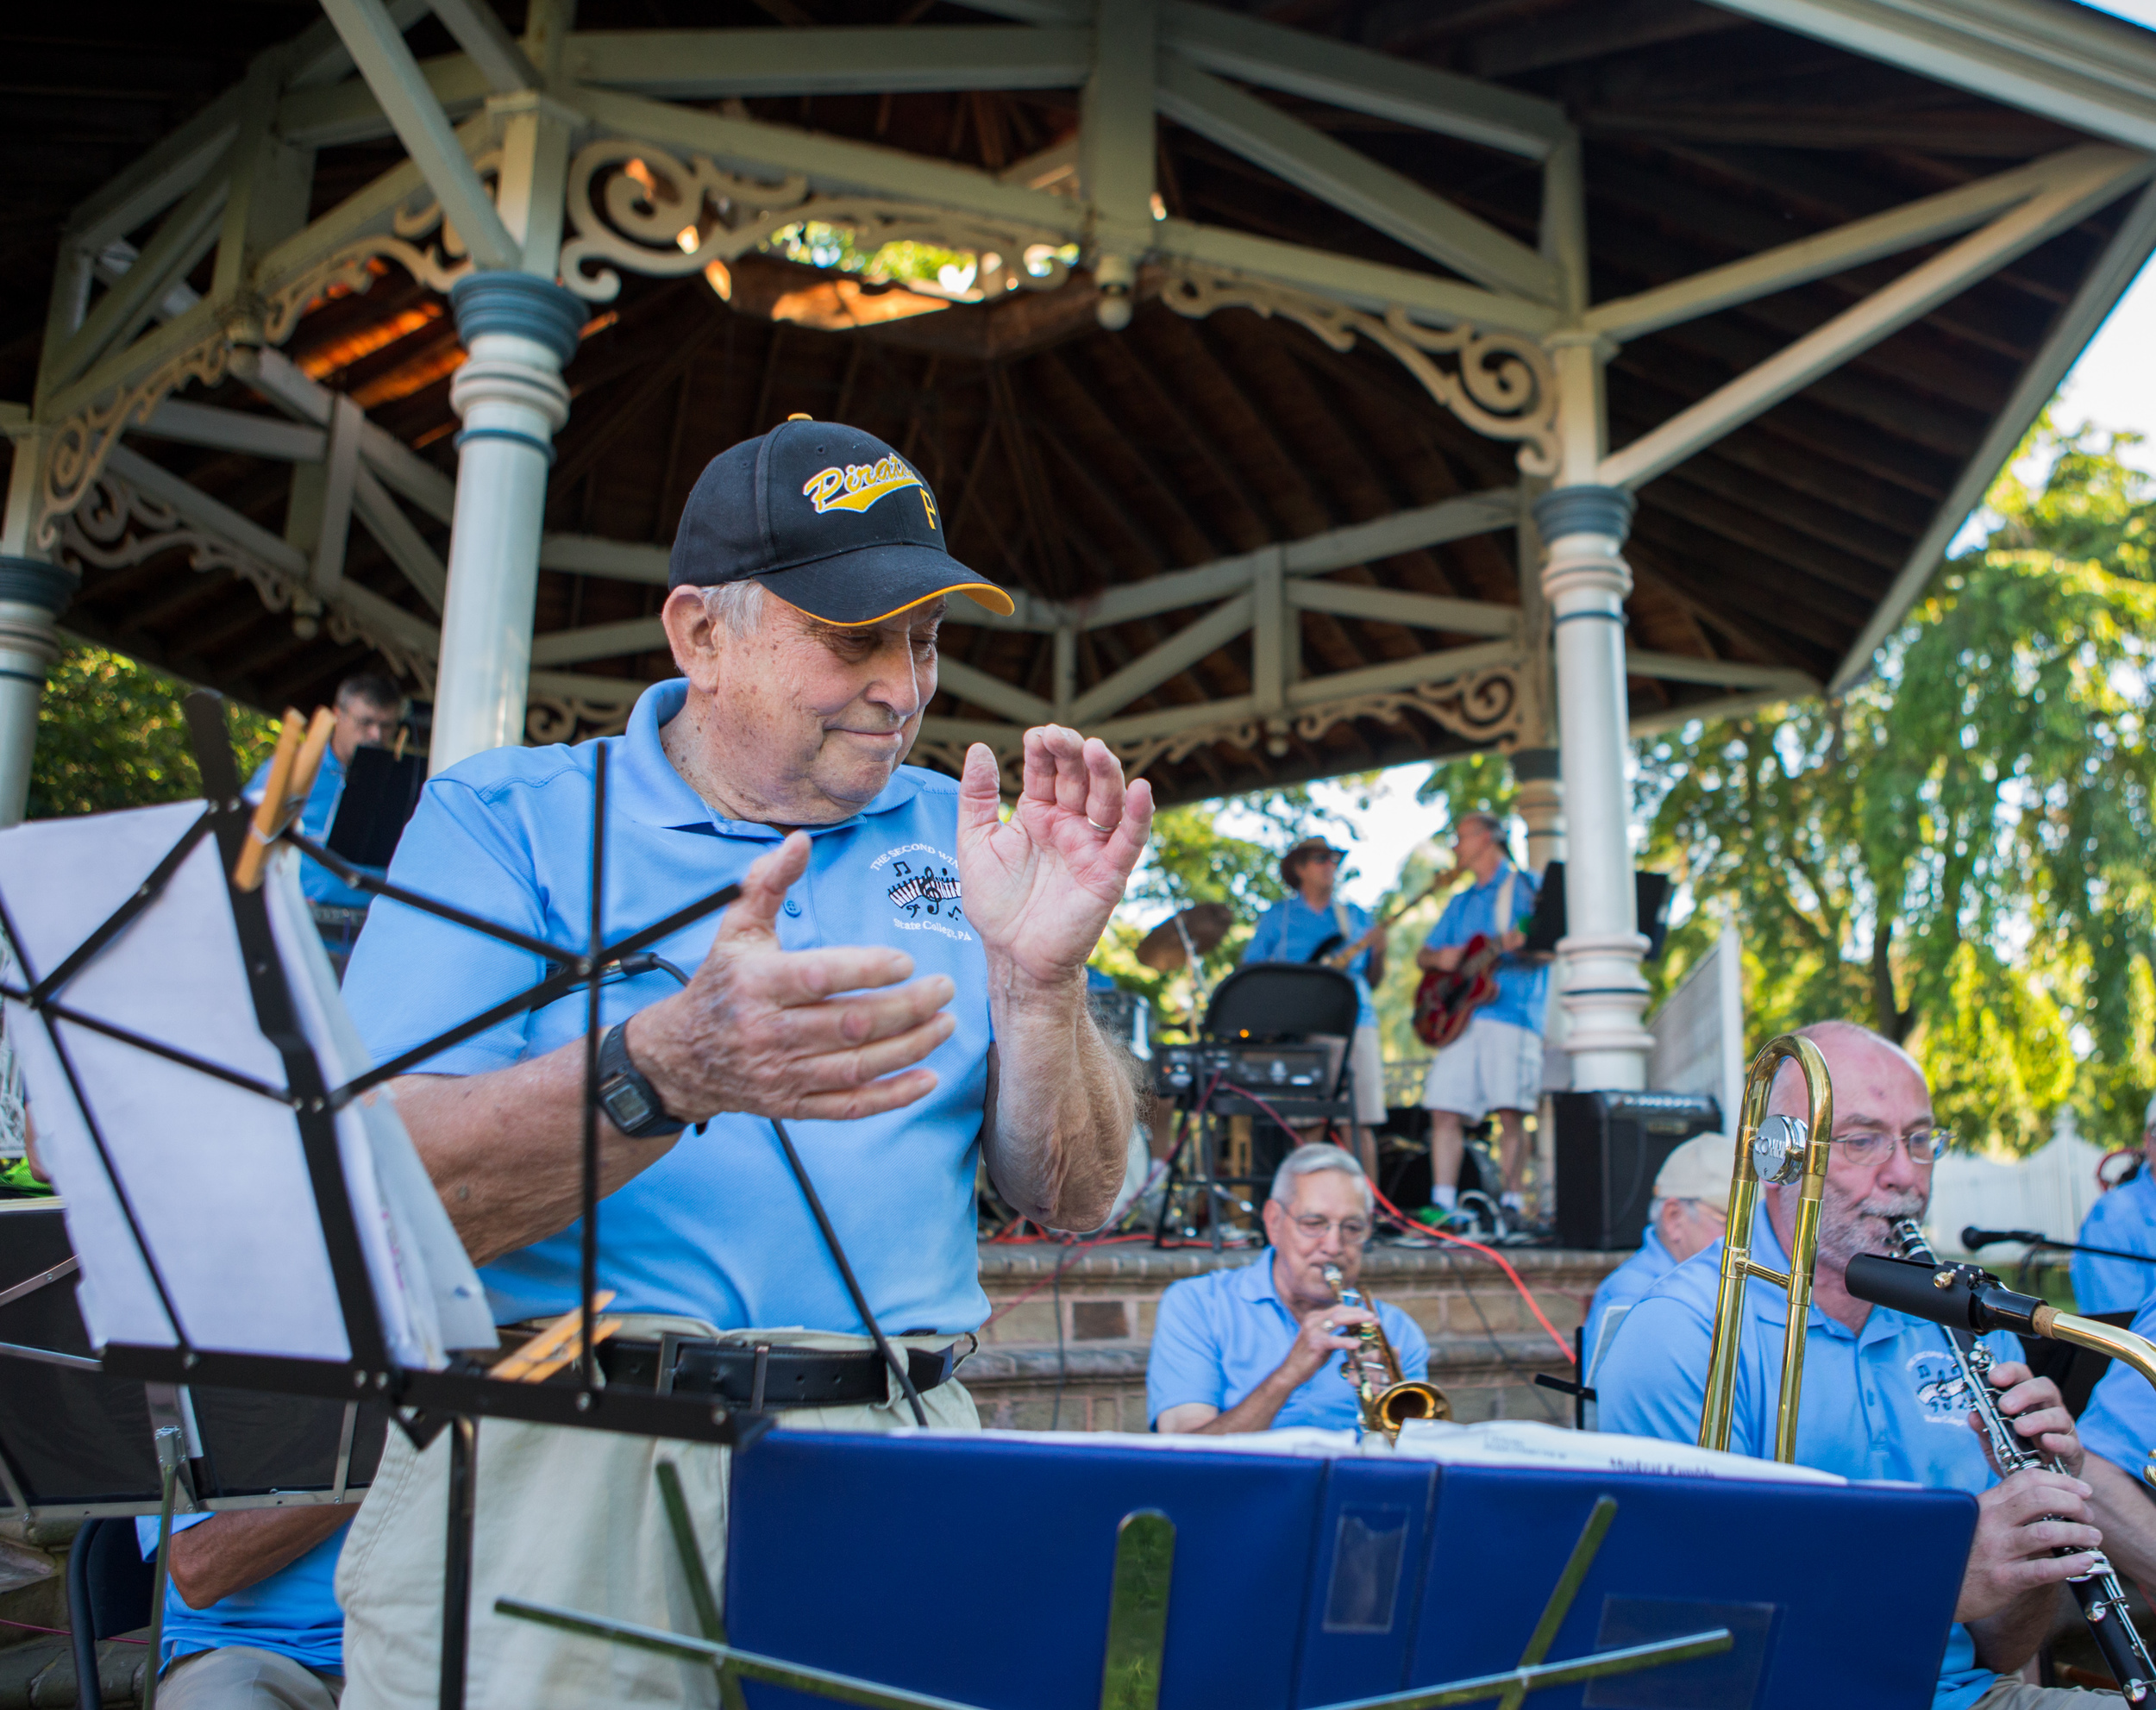 """Theodore Elwood Fuller claps as and prepares to sing """"The Pennsylvania Polka"""" with The Second Winds as part of the weekly concert series at the gazebo in Talleyrand Park in Bellefonte on Sunday, Aug. 7, 2016."""